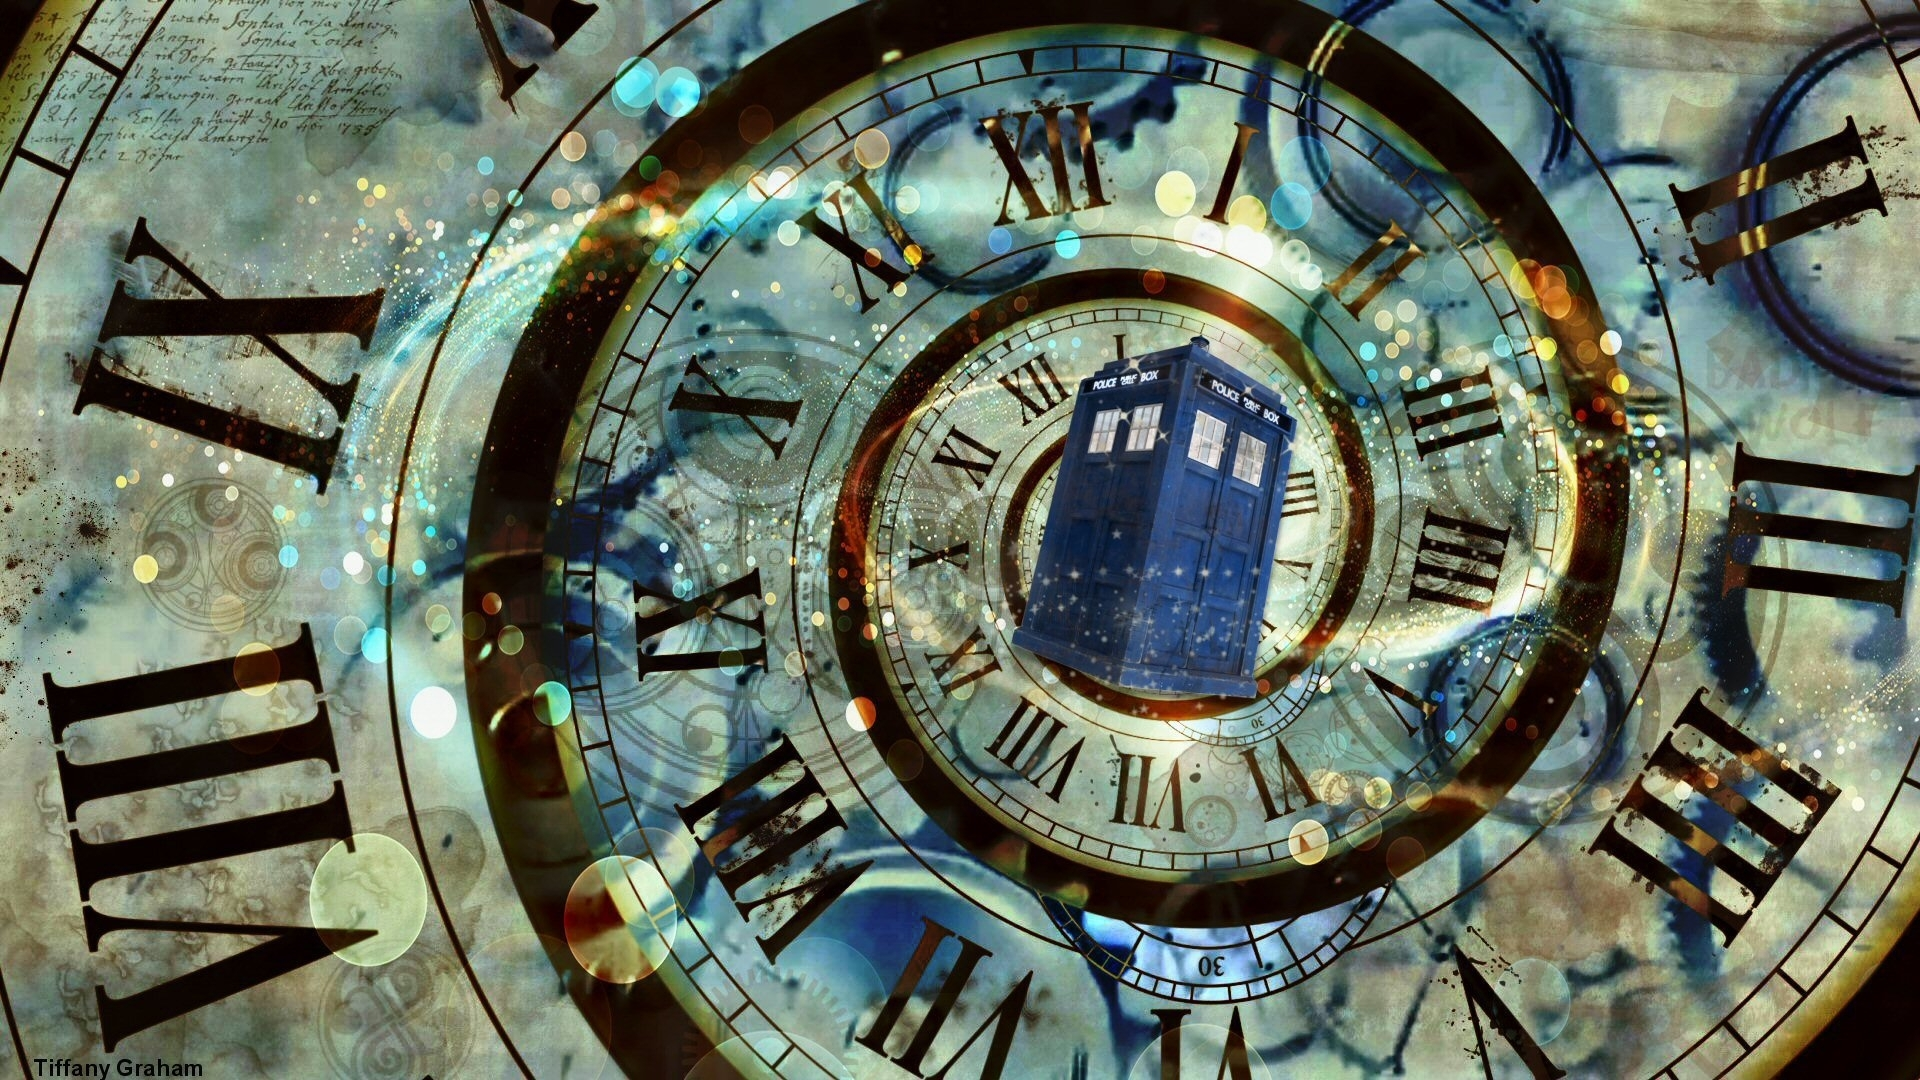 new doctor who tardis wallpaper (∩_∩) | ღ • aberrant rhetoric • ღ